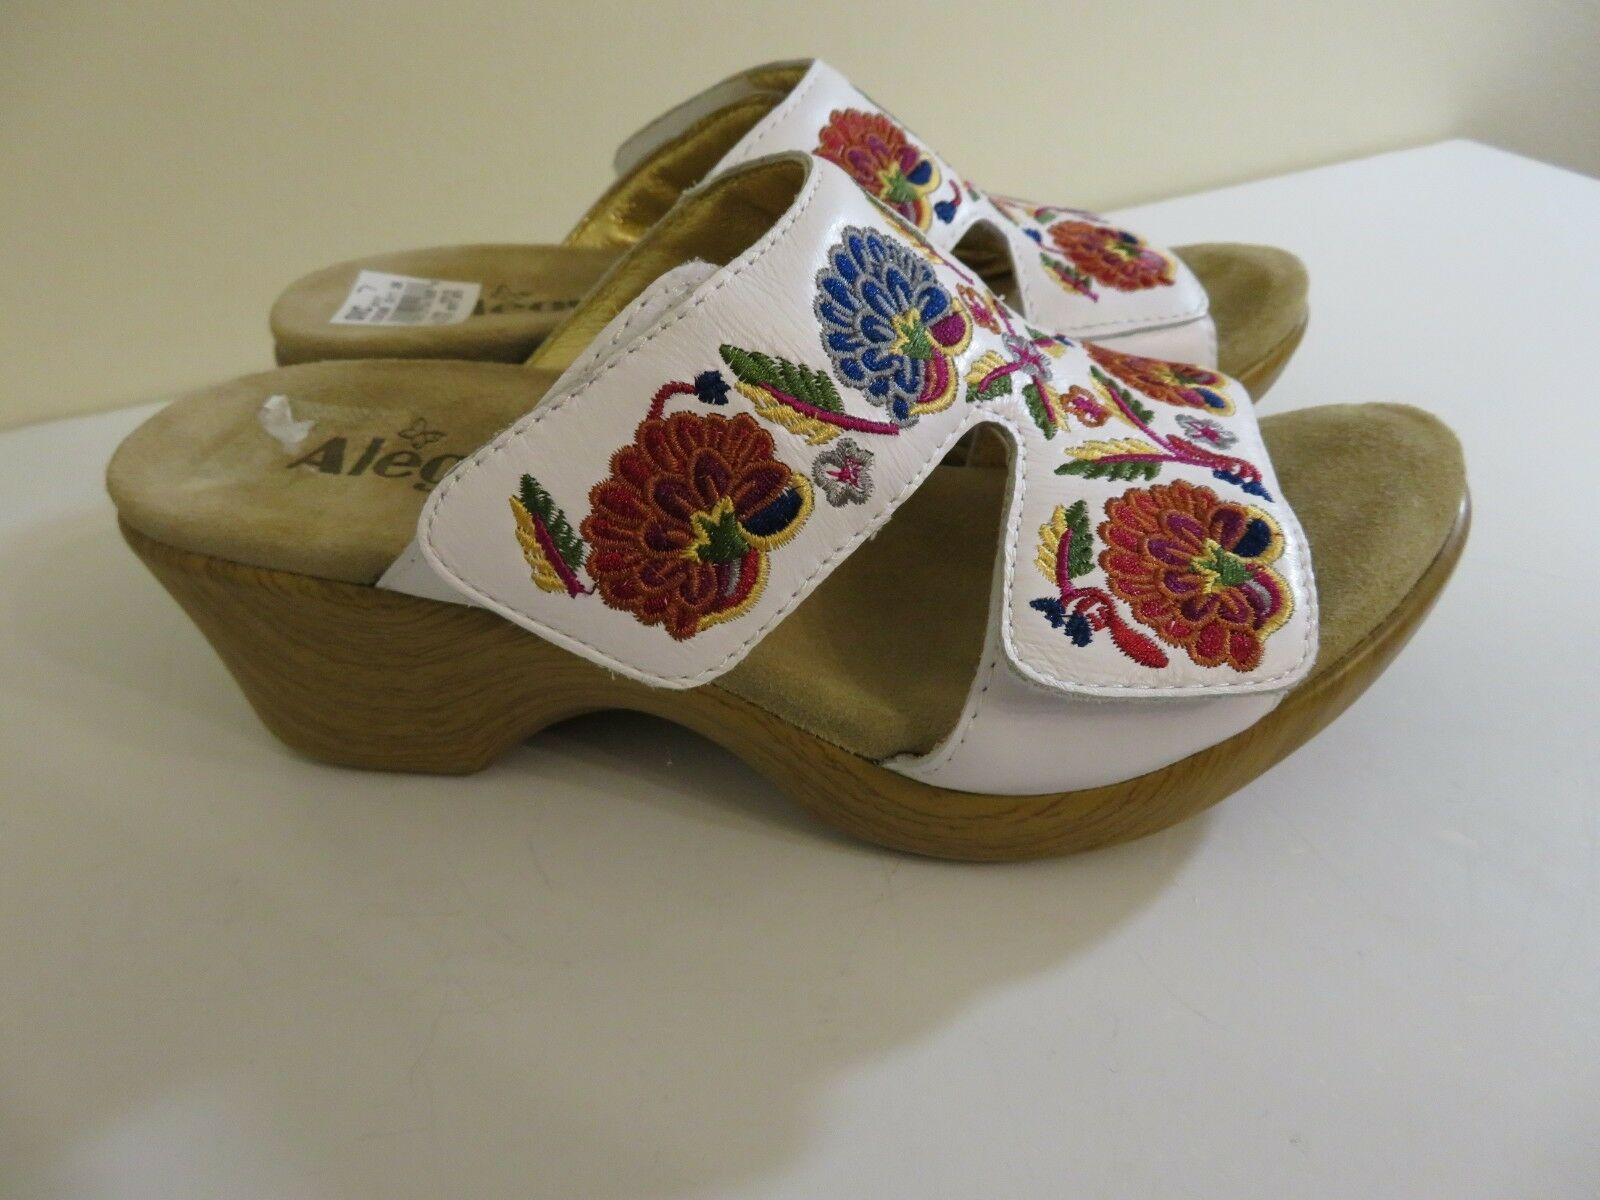 ALEGRIA EMBROIDErosso LEATHER bianca WEDGE SANDALS scarpe LINN NEW NEW NEW 37 FITS 7 TO 7.5 ce9e17